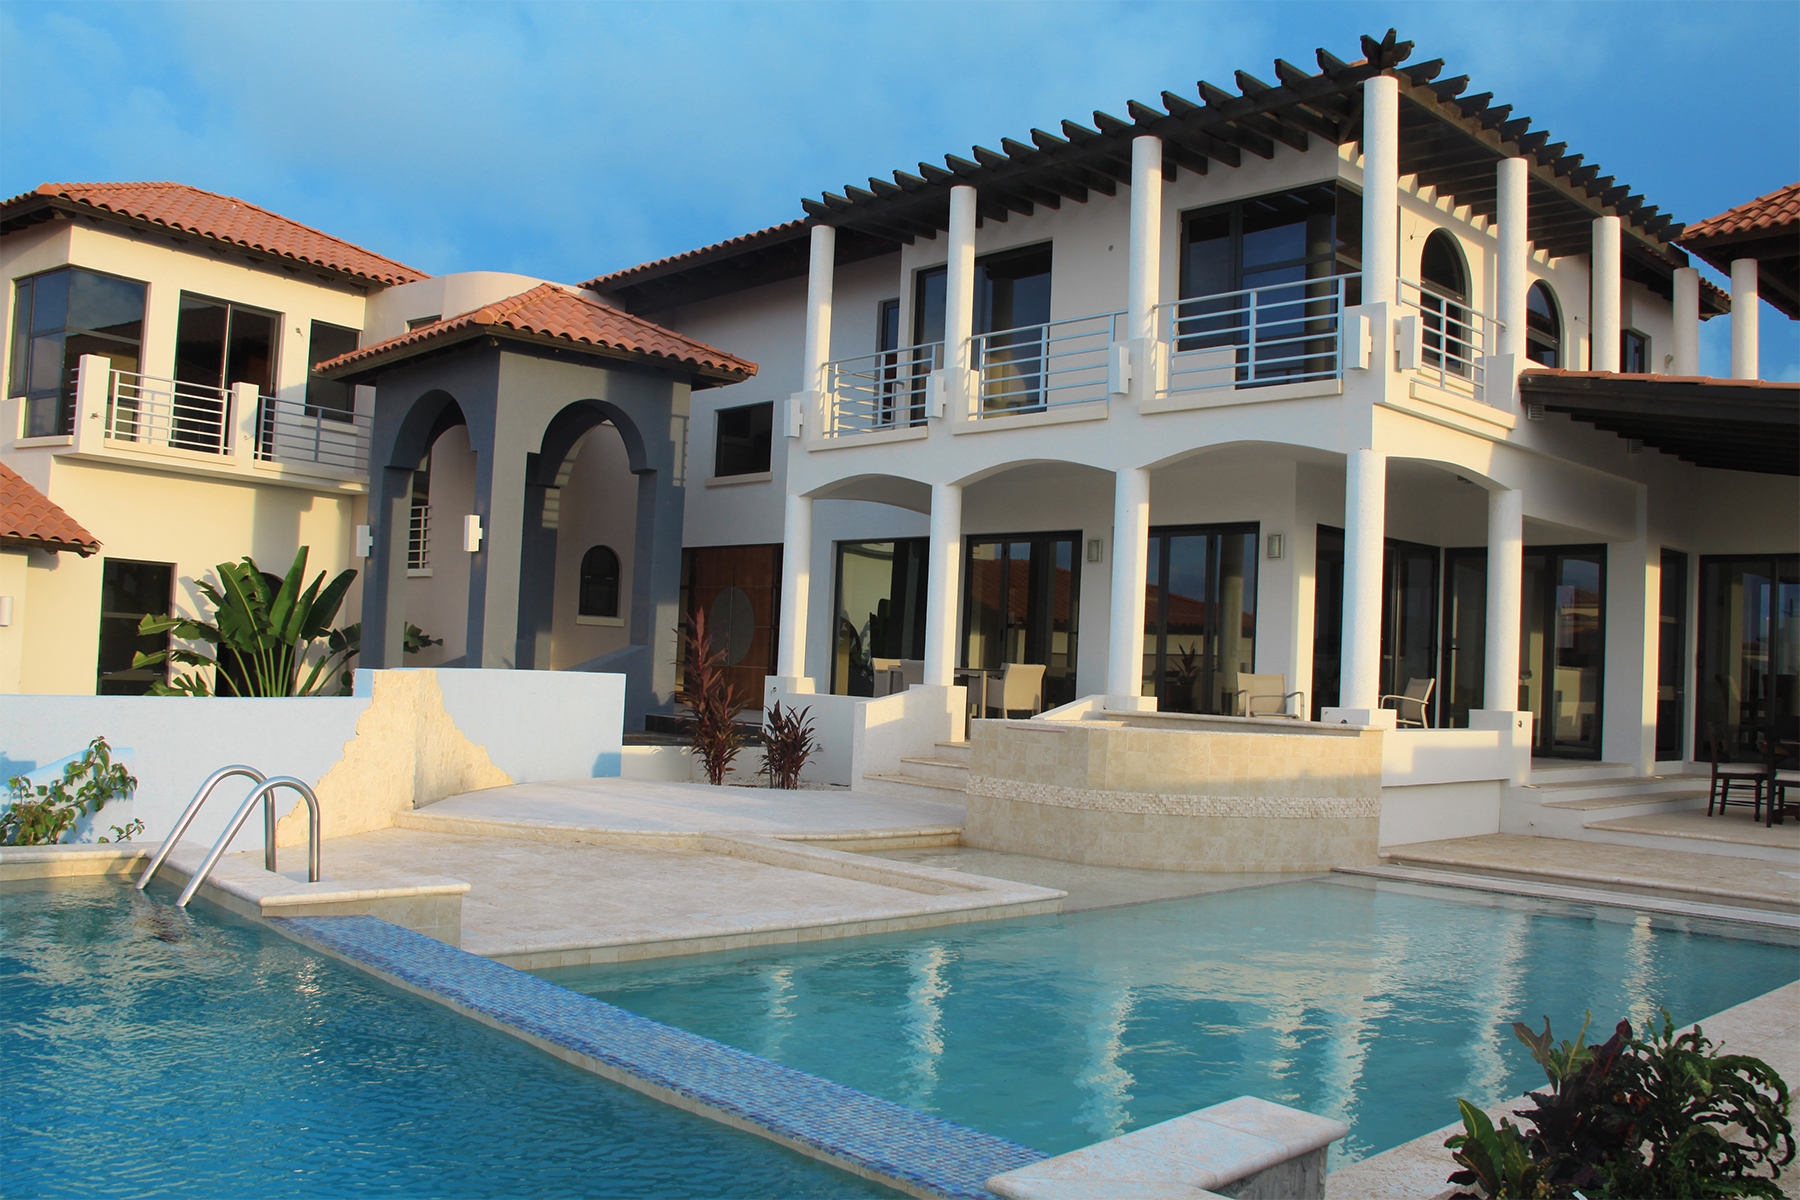 Single Family Home for Sale at Villa Riba Sero Malmok, Aruba